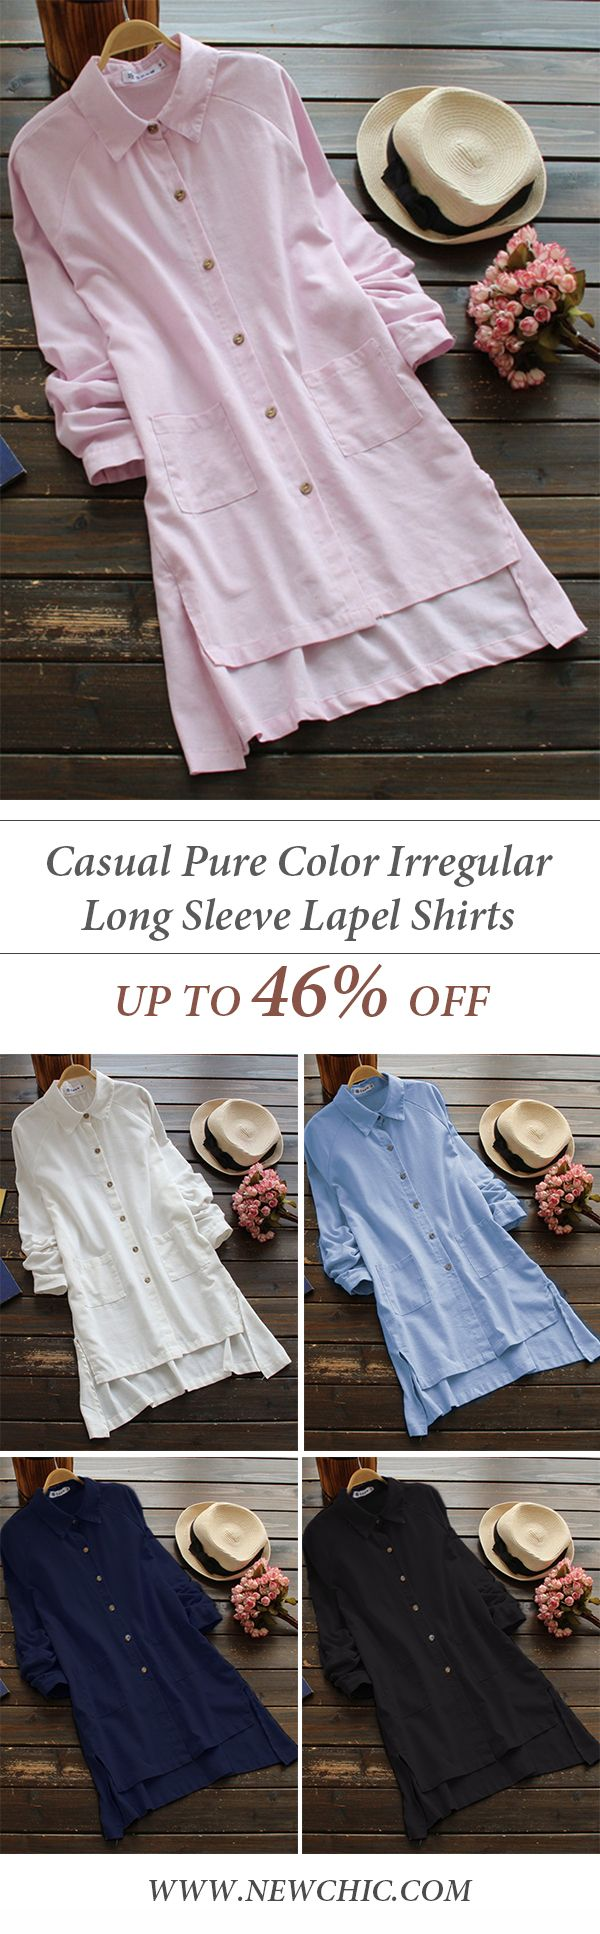 [Newchic Online Shopping] 46%OFF Women's Casual Pure Color Irregular Shirts with Long Sleeve and Lapel Collar #shirts  #womenswear #womensfashion